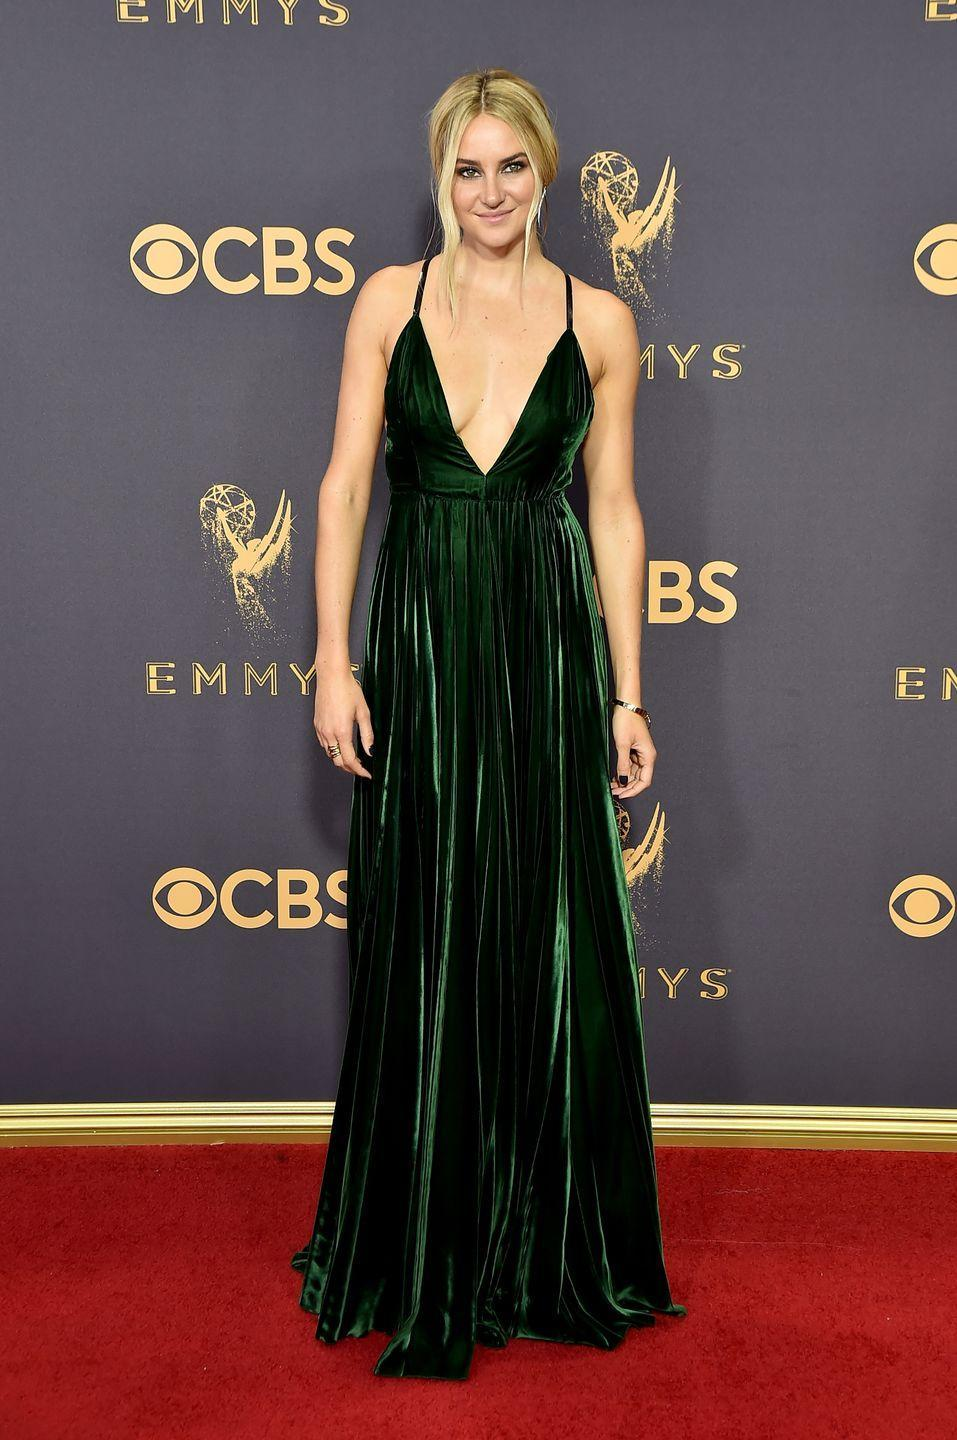 <p>The dark-green velvet fabric on Shailene Woodley's Ralph Lauren evening gown looks like it could have been made from Merida's dress. </p>